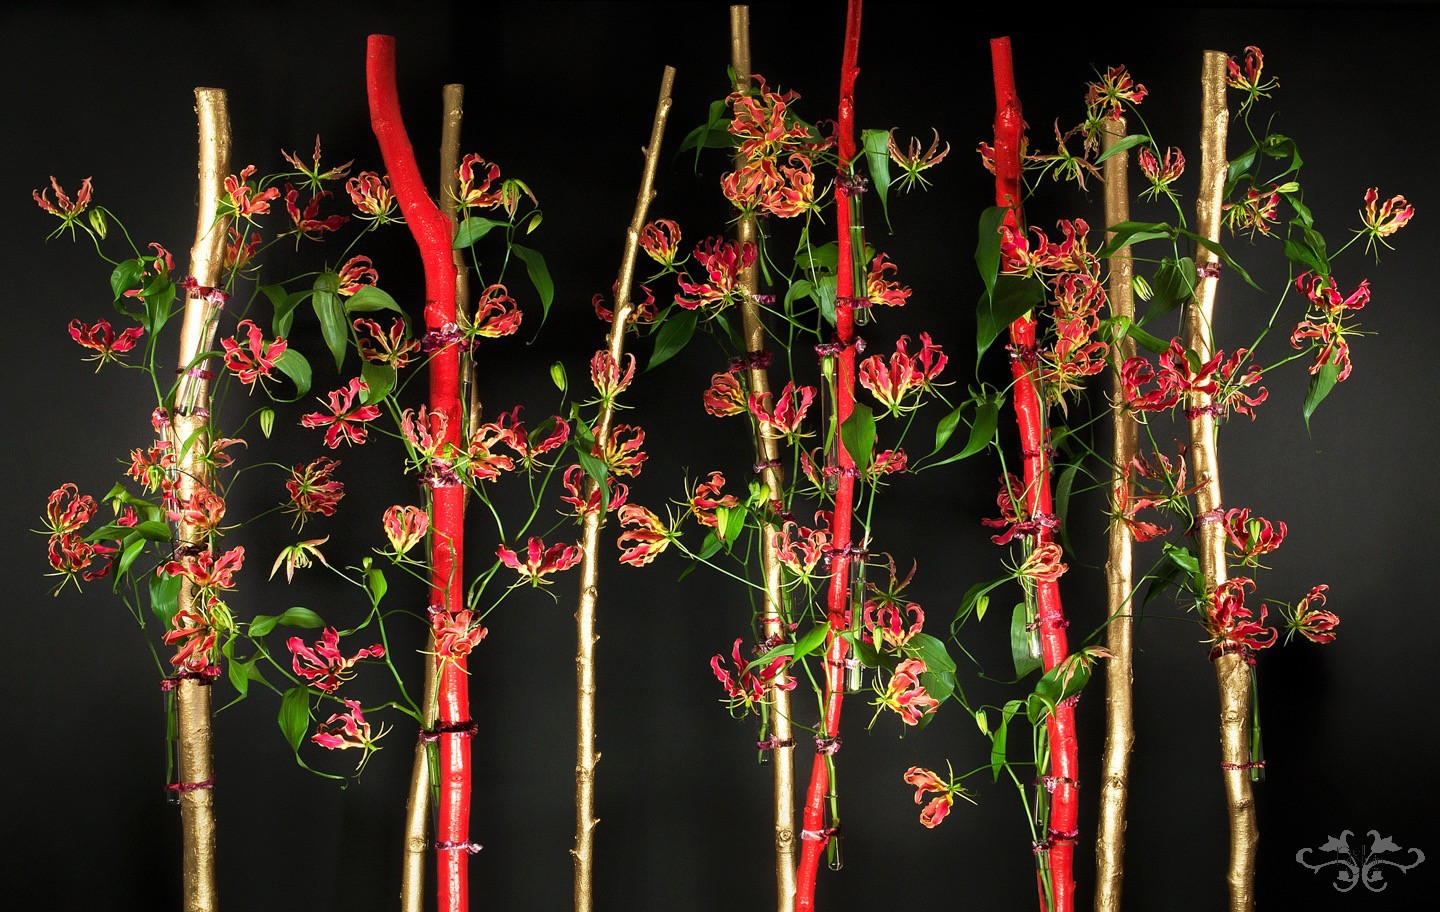 Birch trunks sprayed in gold and bright red forms a base from which the Gloriosa can dance.  All photography by John Nassari